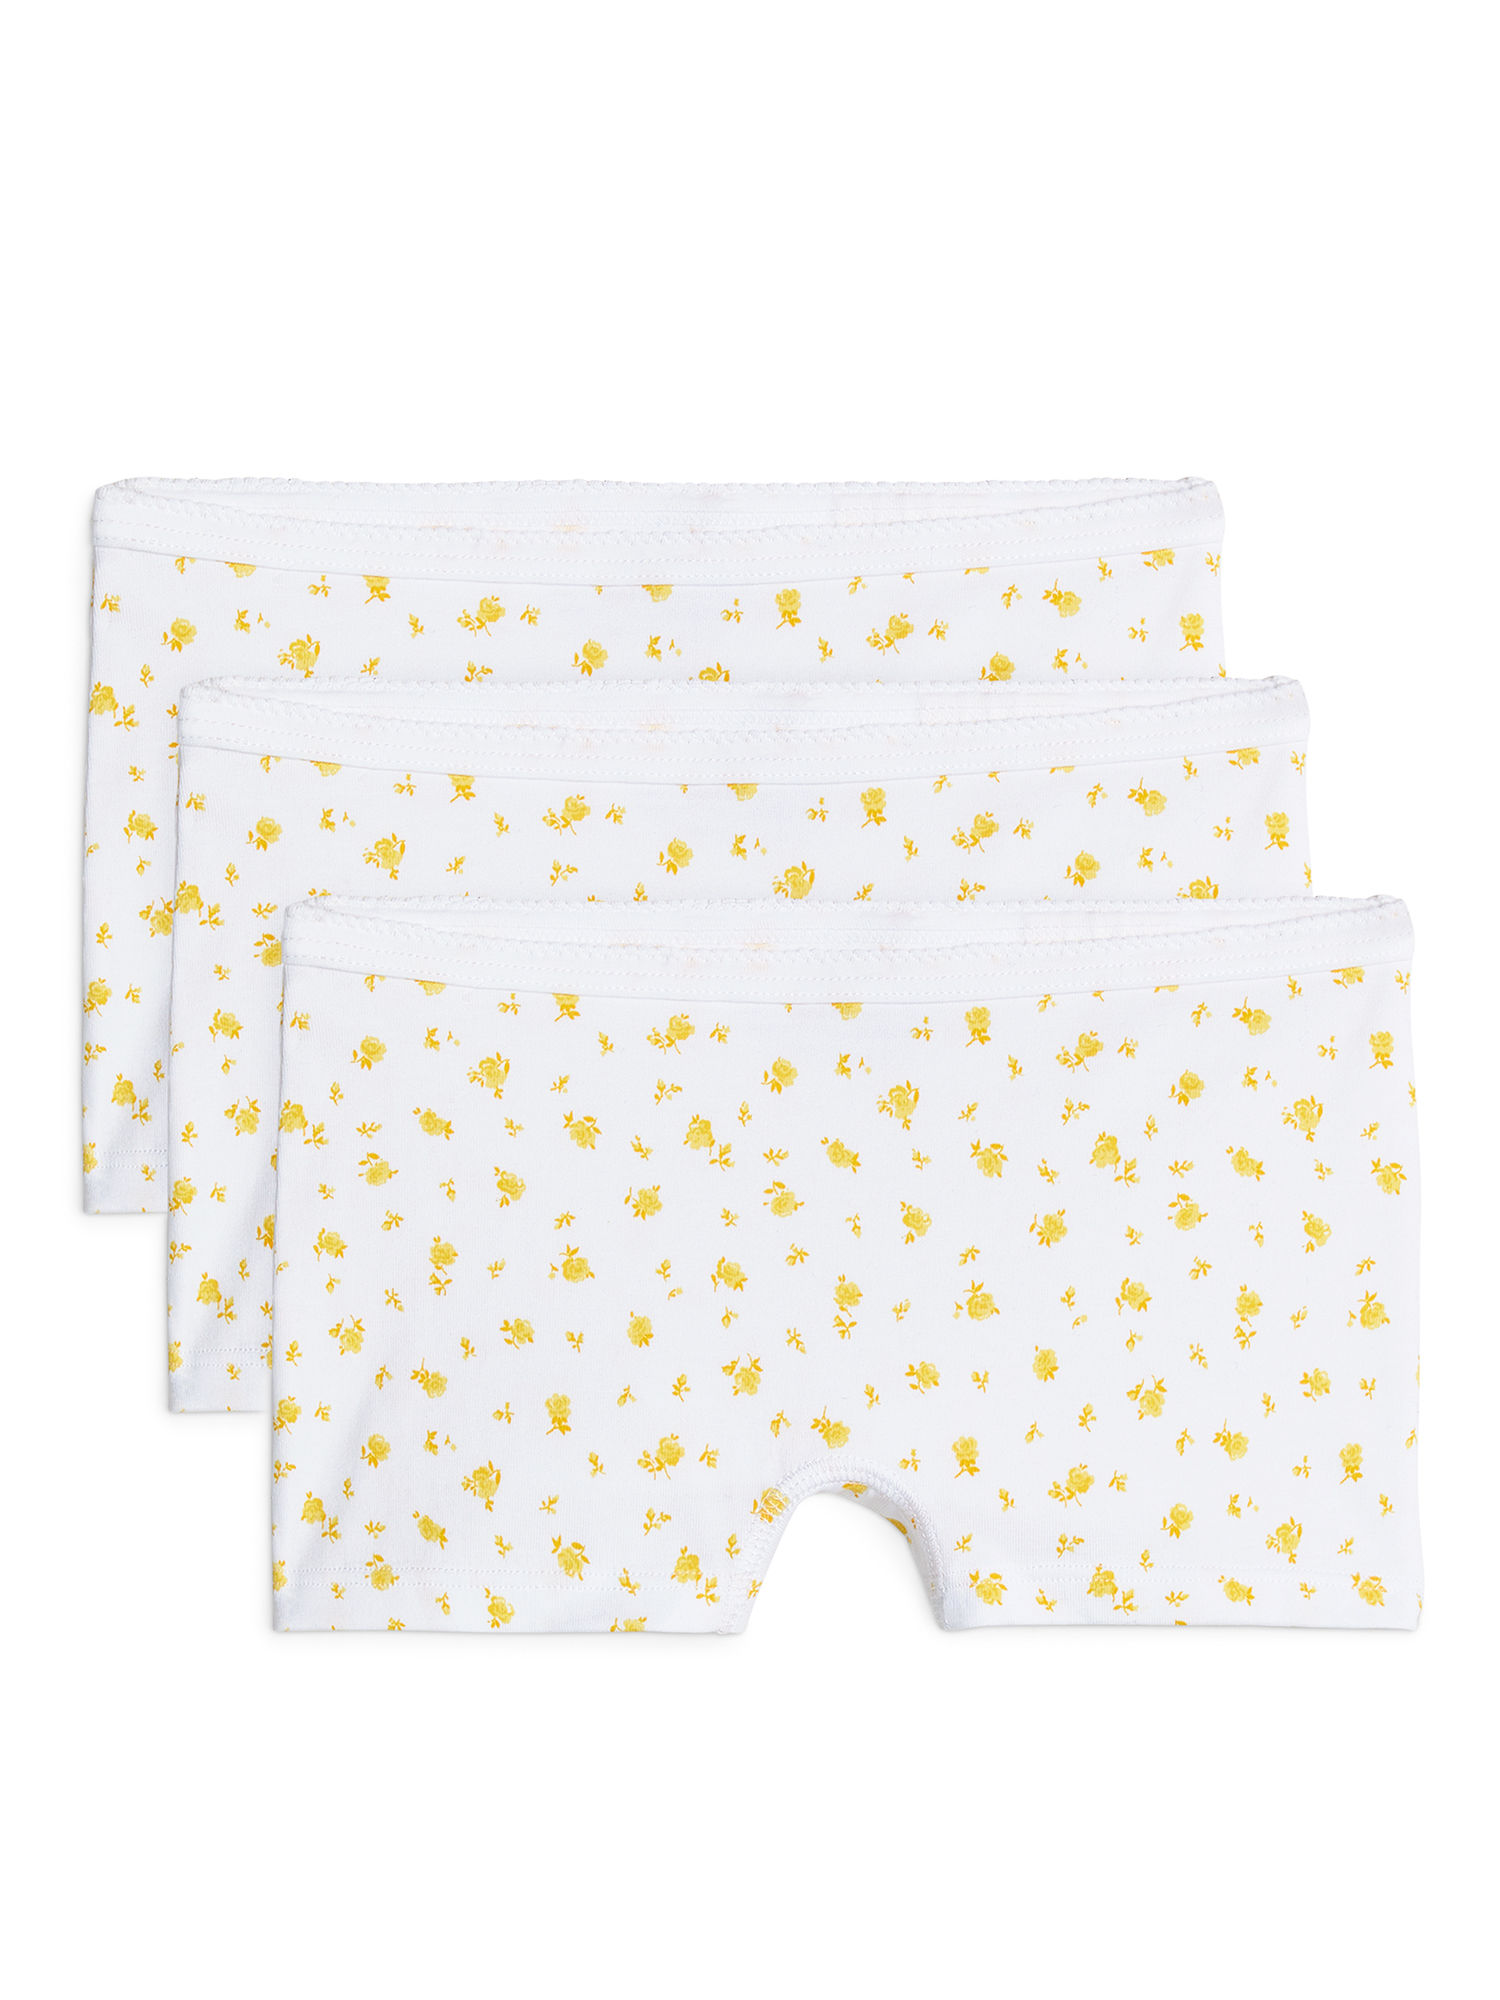 Fabric Swatch image of Arket cotton jersey boxer briefs, set of 3 in yellow